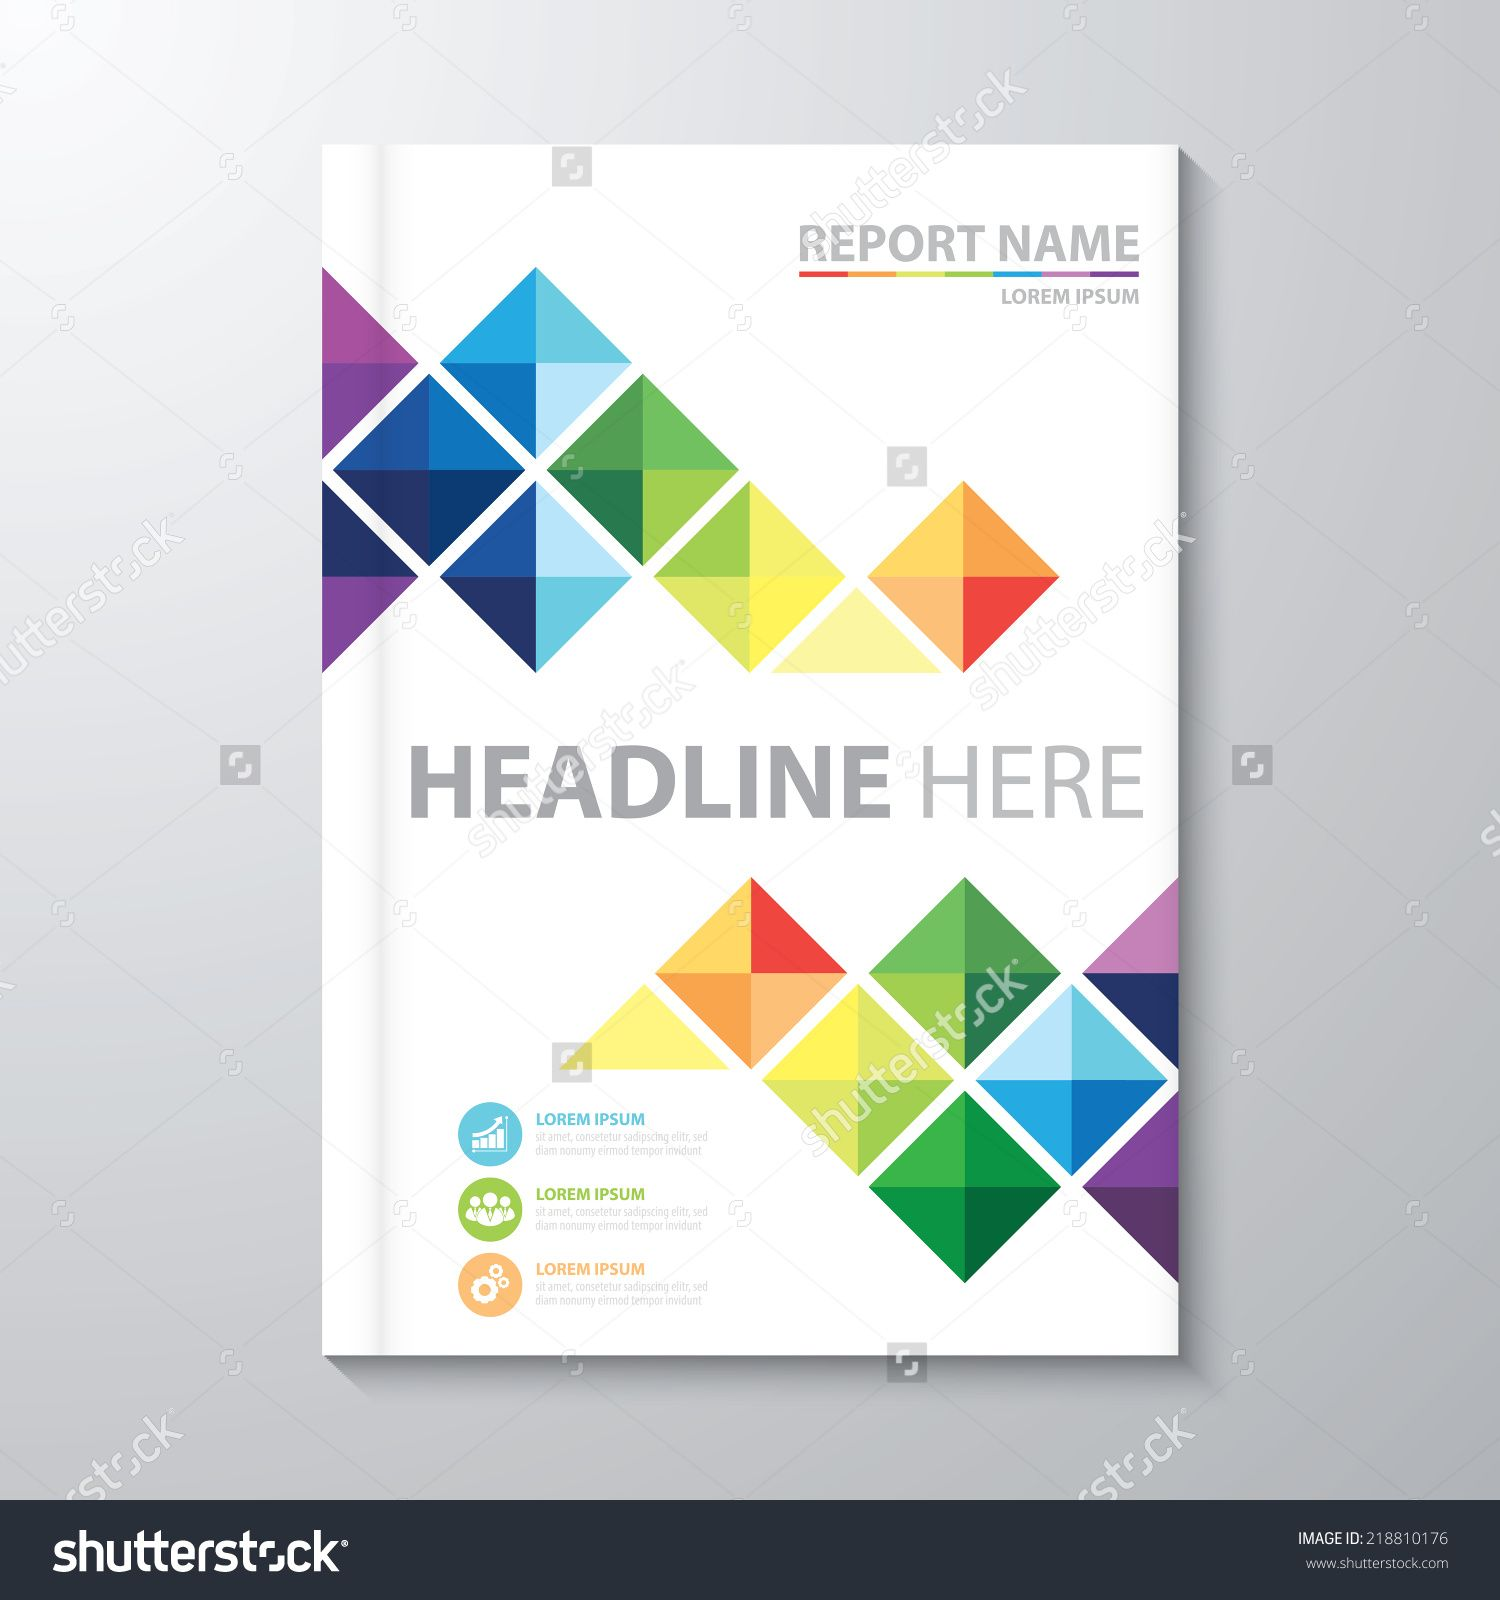 Creative Book Report Covers : Abstract colorful triangle background cover design